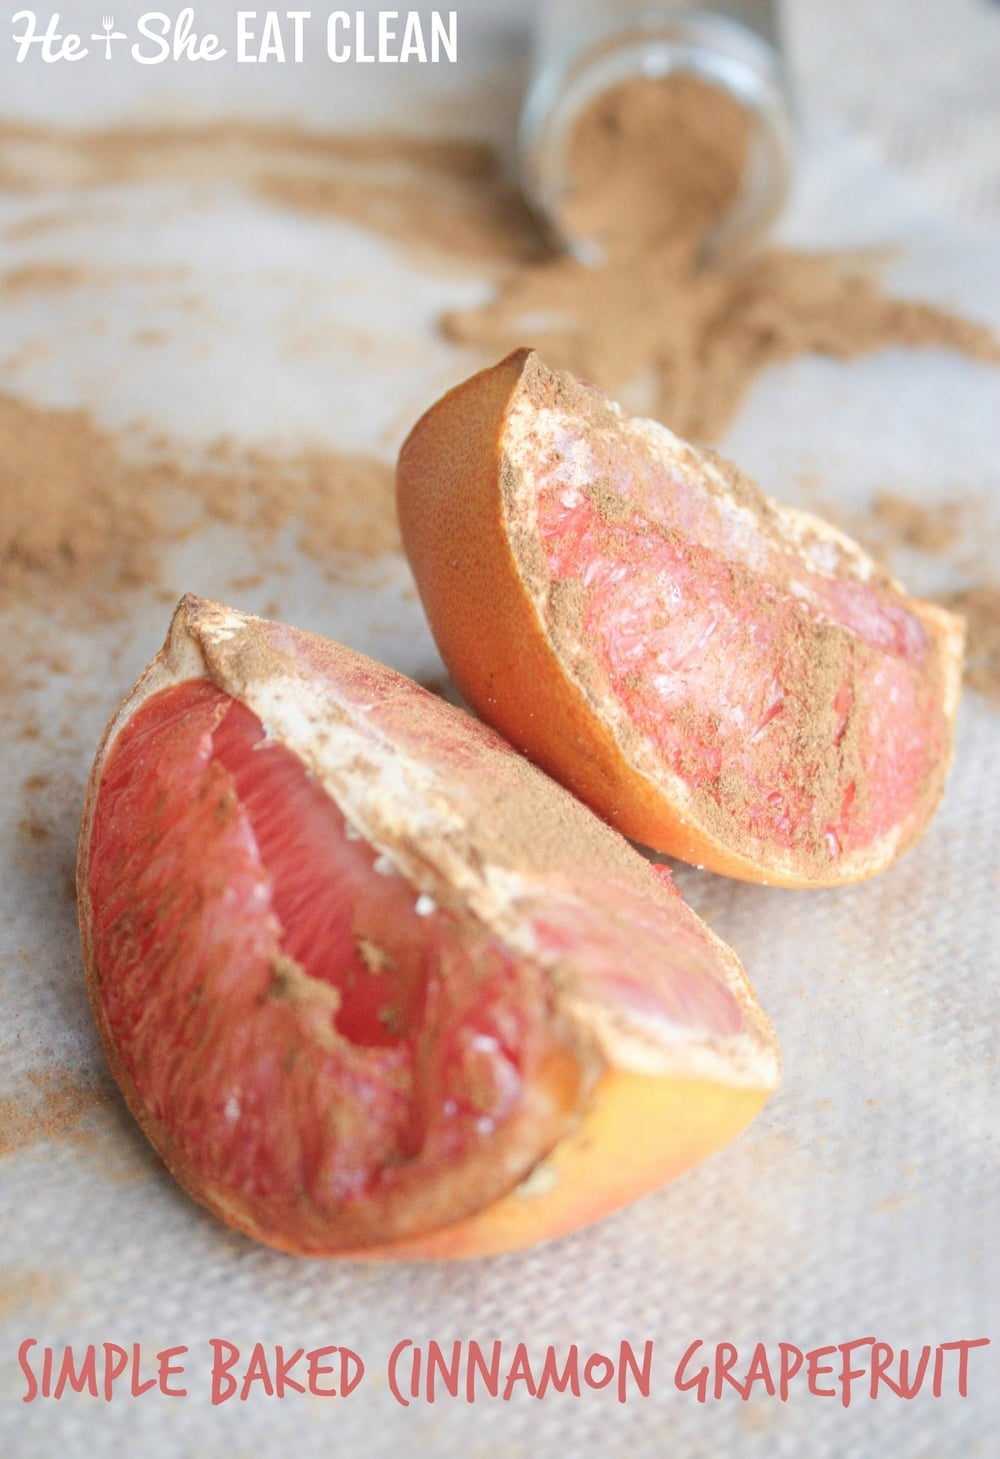 Clean Eat Recipe :: Simple Baked Cinnamon Grapefruit | He and She Eat Clean